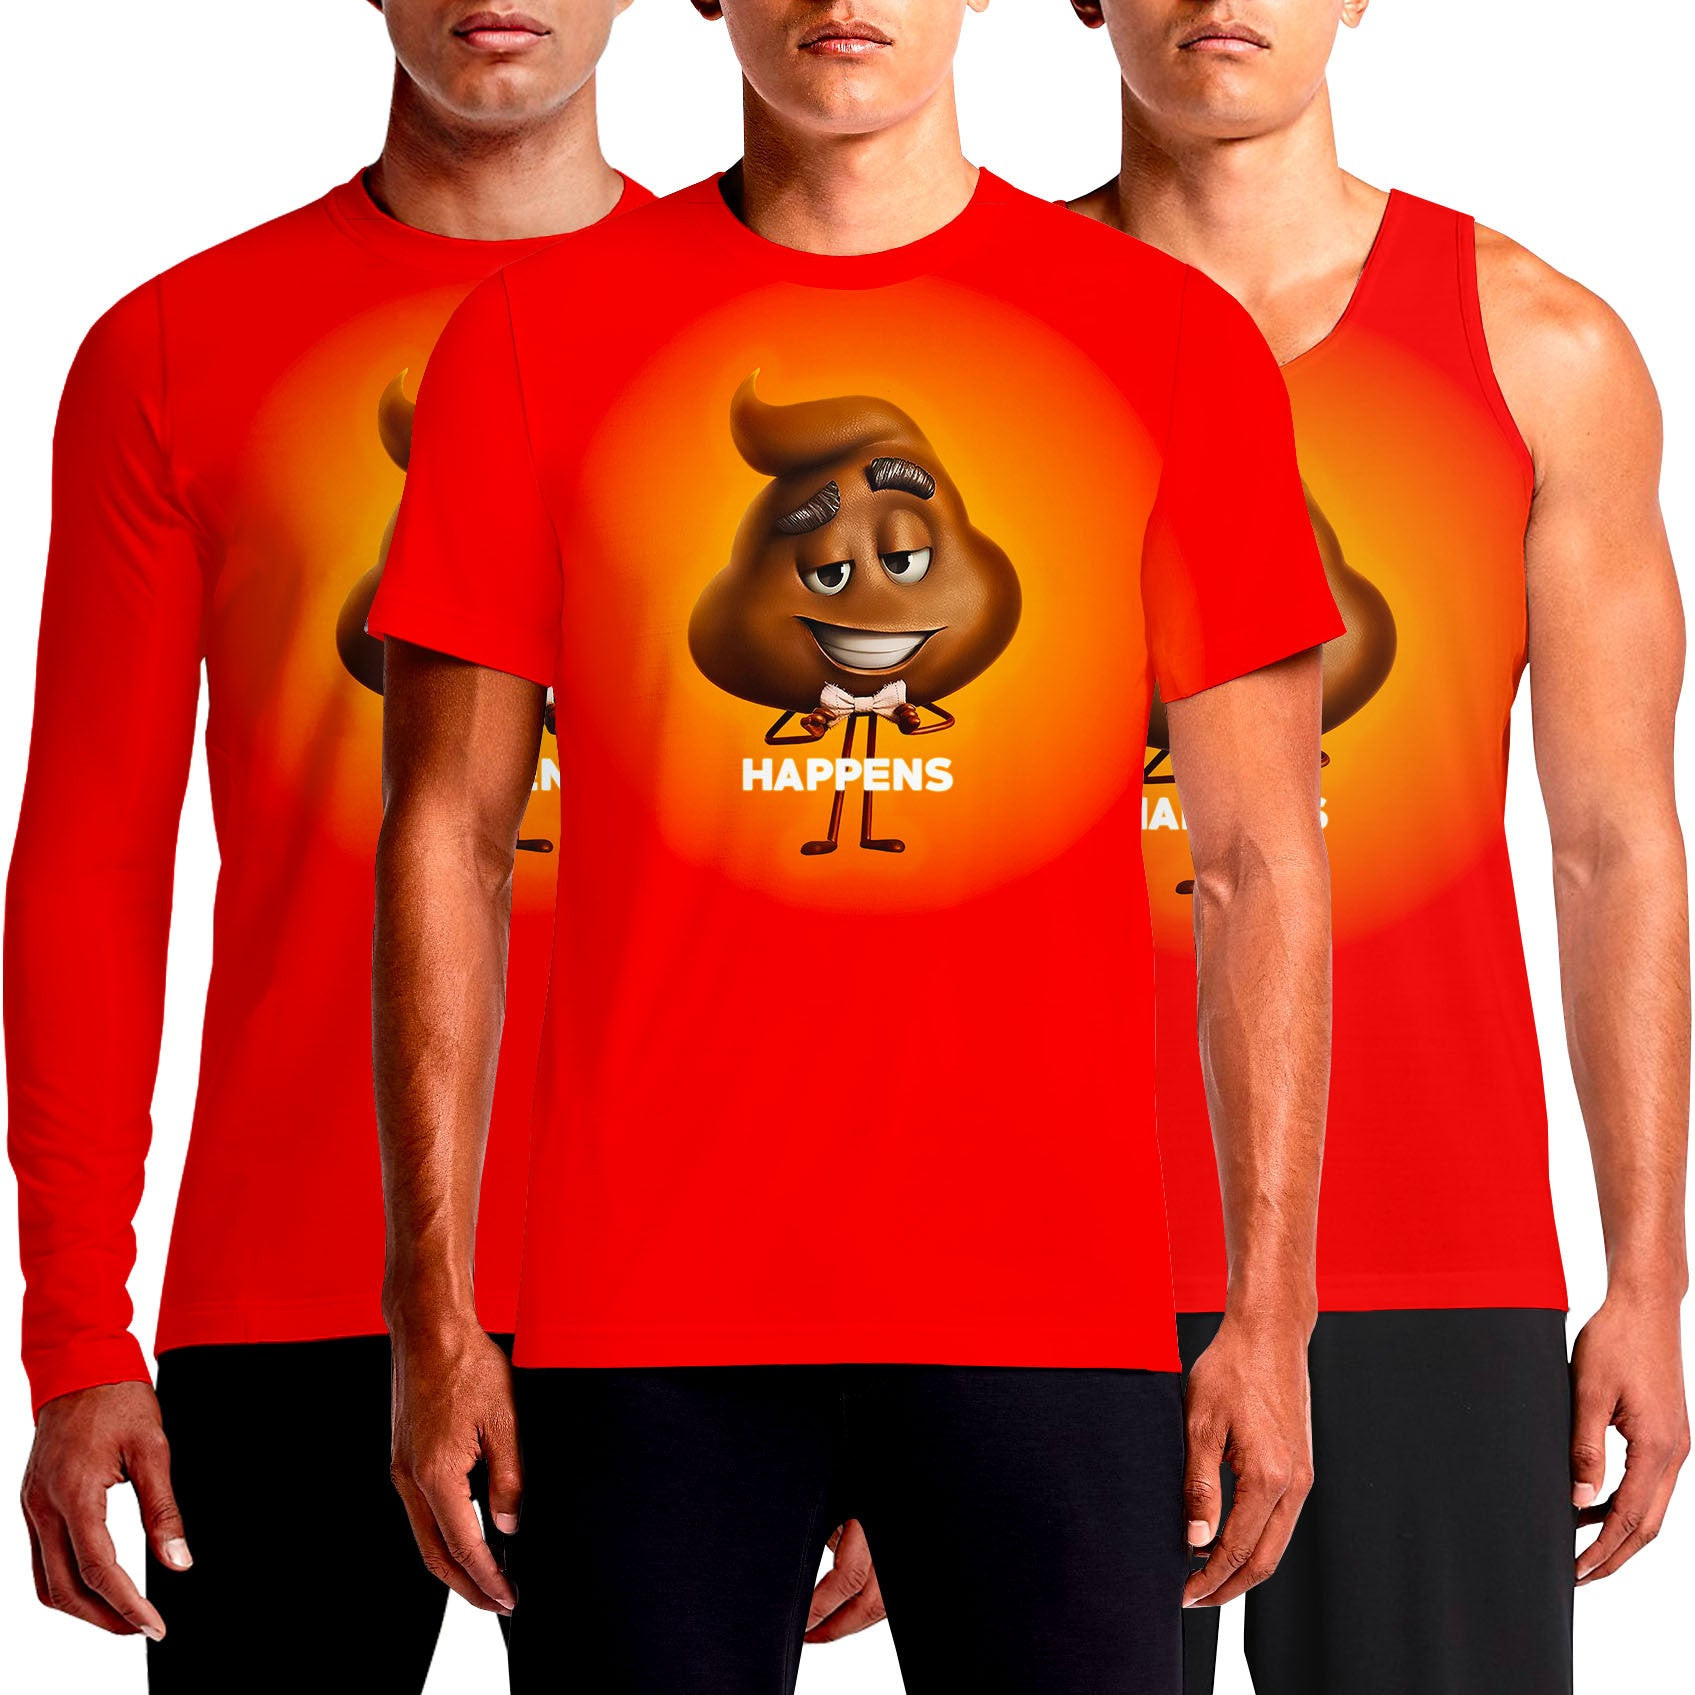 Emoji T-Shirts India For Sale Online T Shirt Buy Red Funny T-Shirt Custom Shirts Cheap Cool Design Emoticons Eyes Heart Face Poop Print Shop Smirk Smiley Shrug